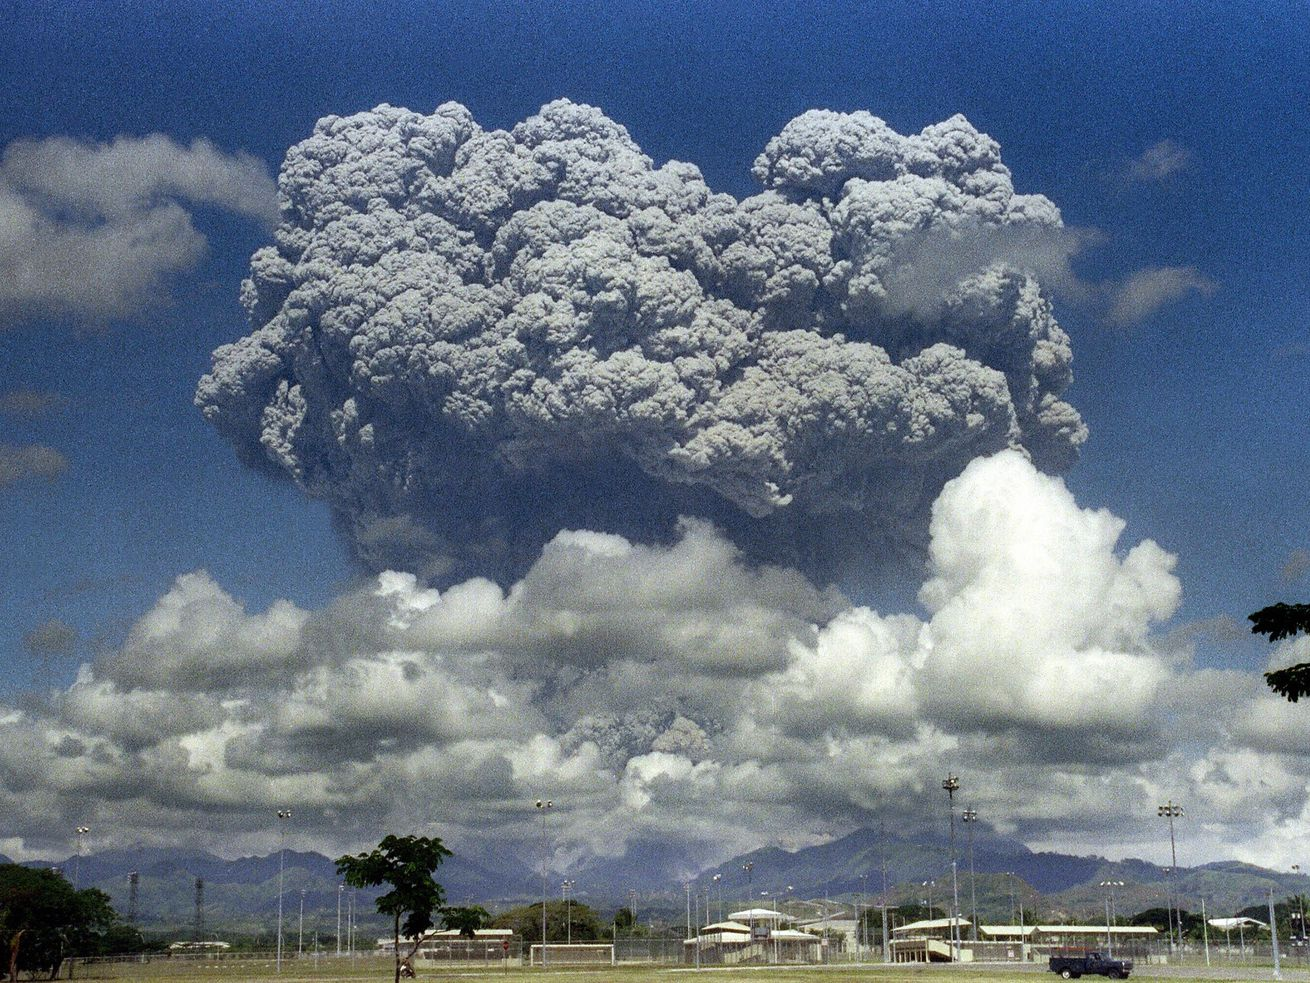 The 1991 eruption of Mount Pinatubo, which substantially reduced global temperatures. Solar geoengineering would aim to lower temperatures by sending similarly-acting particles into the atmosphere.